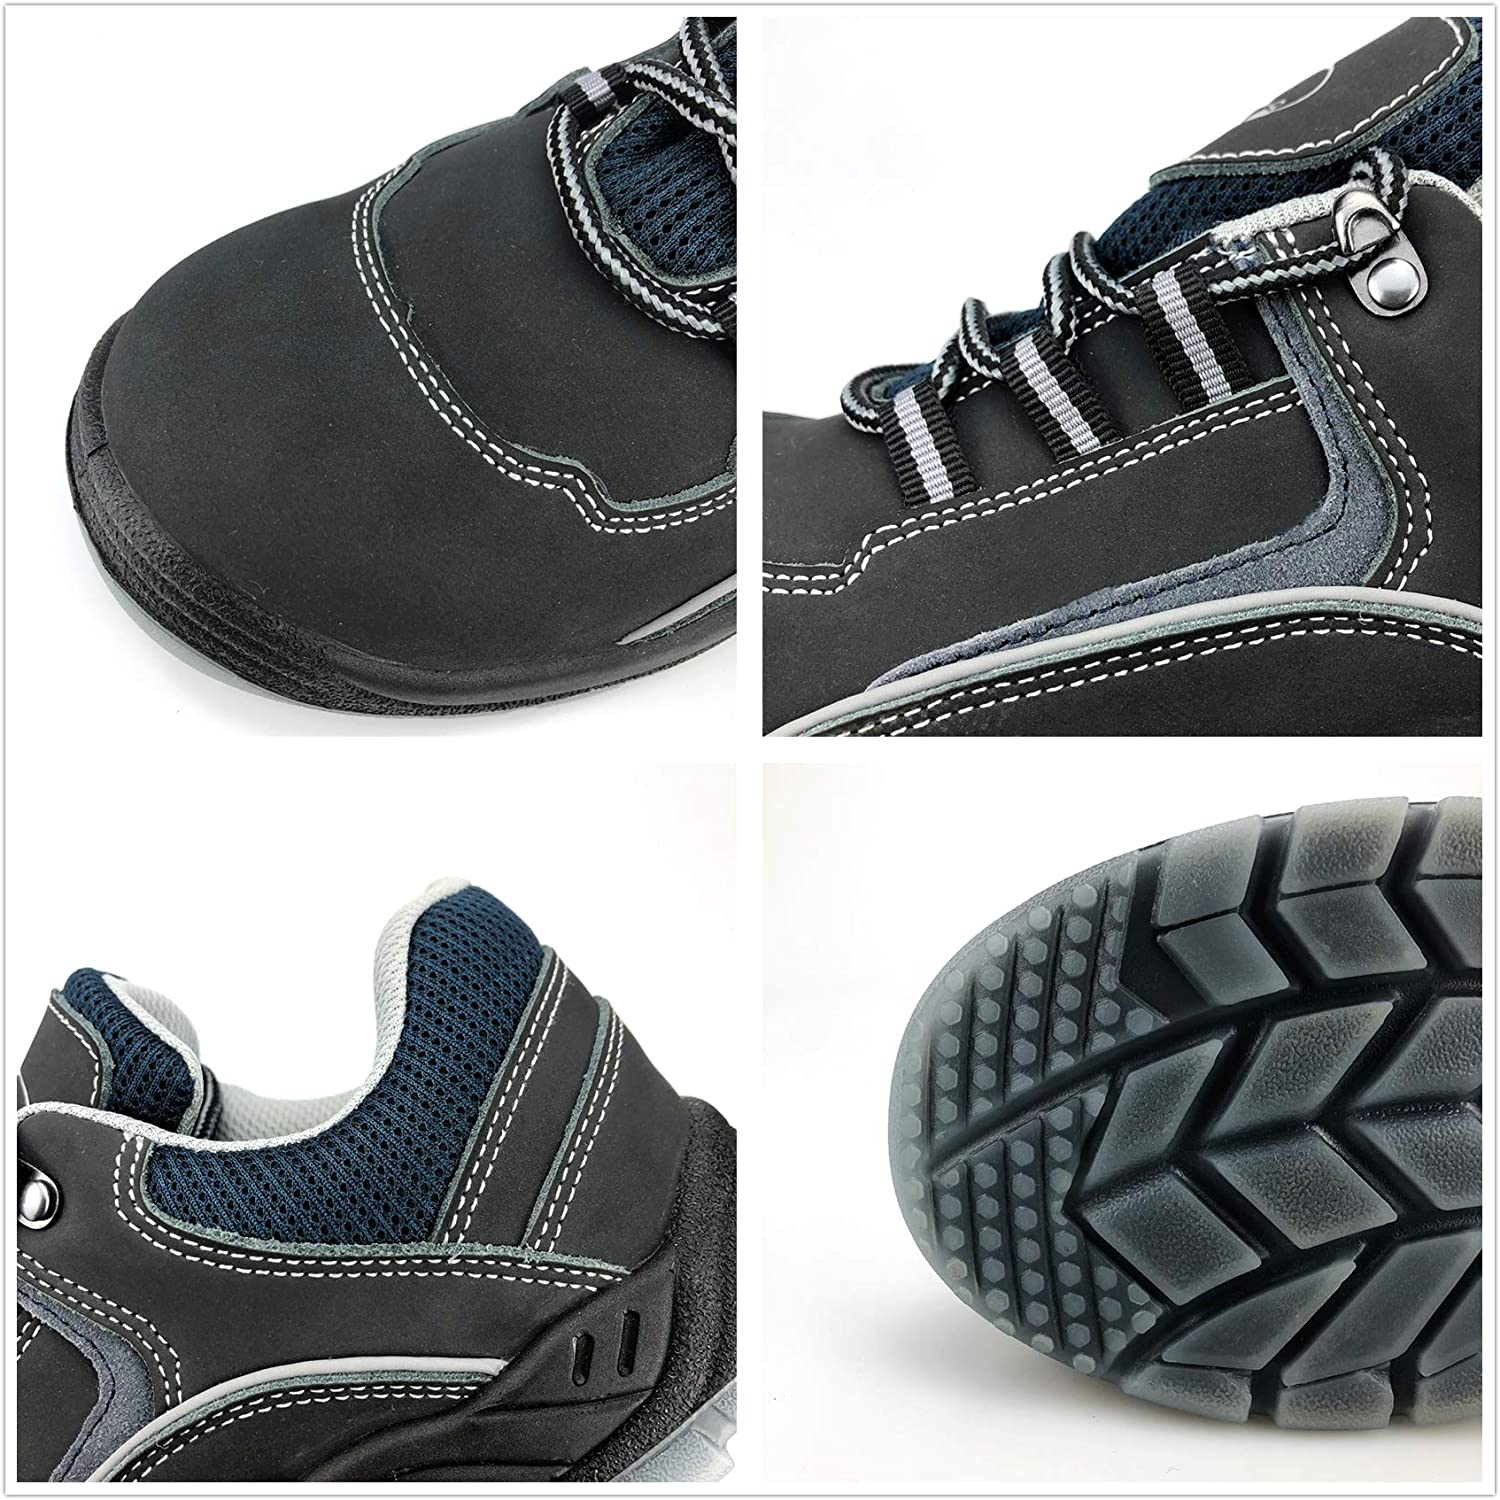 SYLPHID Steel Toe Shoes Work Safety Shoes for Men and Women Breathable Industrial /& Construction Sneakers Puncture Proof Footwear